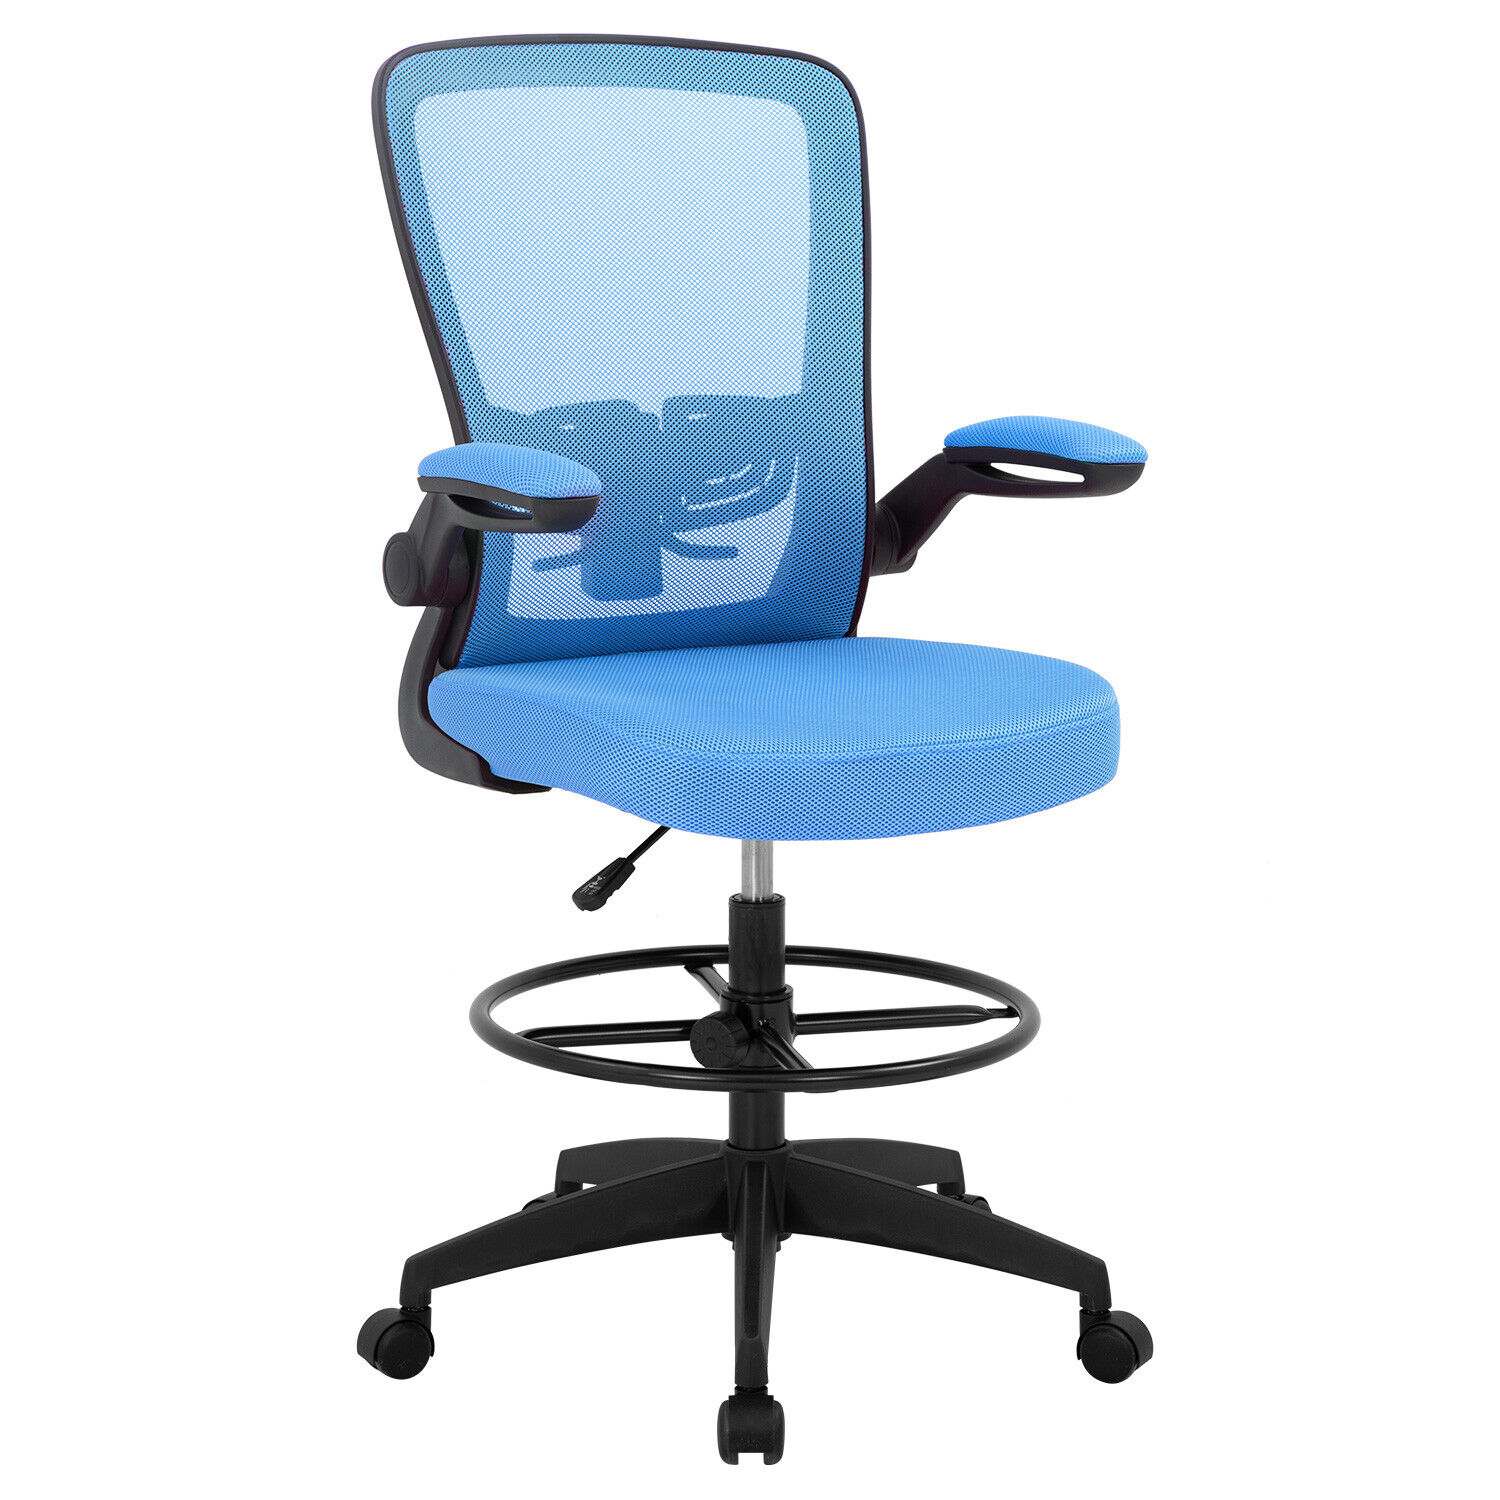 Drafting Chair Tall Office Chair Adjustable Height with Lumbar Support Flip Up Business & Industrial